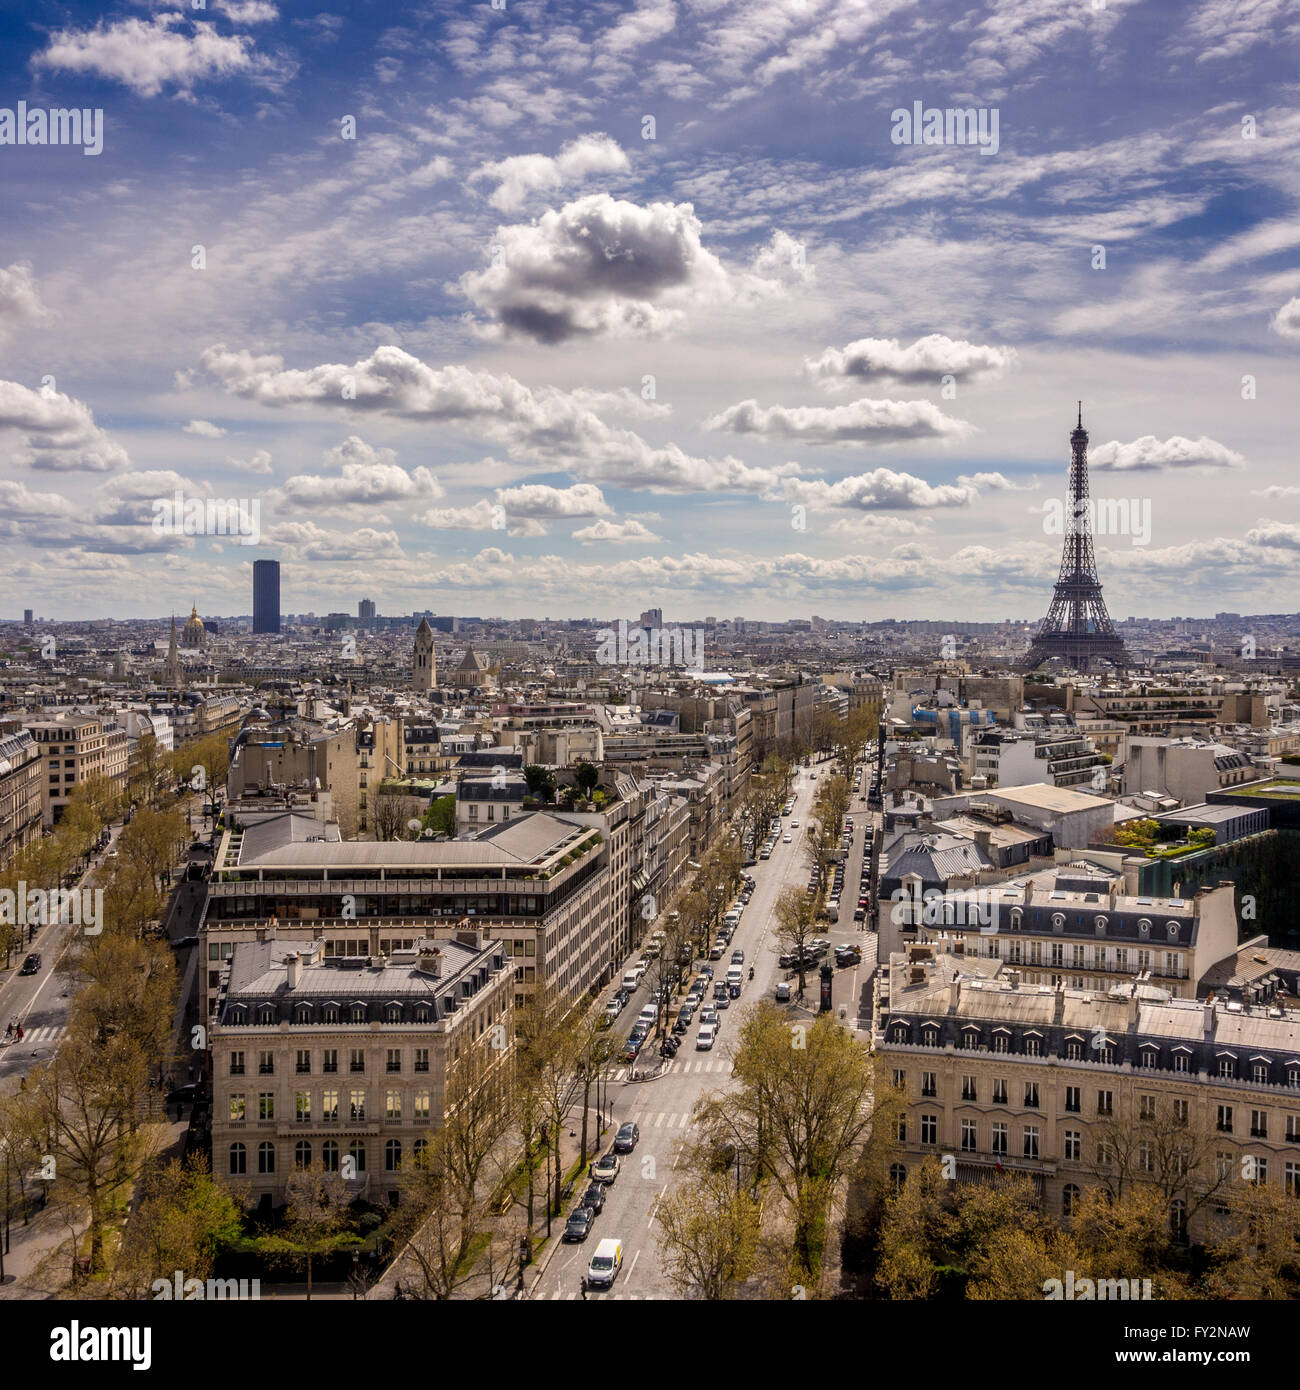 View towards the Eiffel Tower and Montparnasse Tower from the Arc de Triomphe, Paris, France. - Stock Image